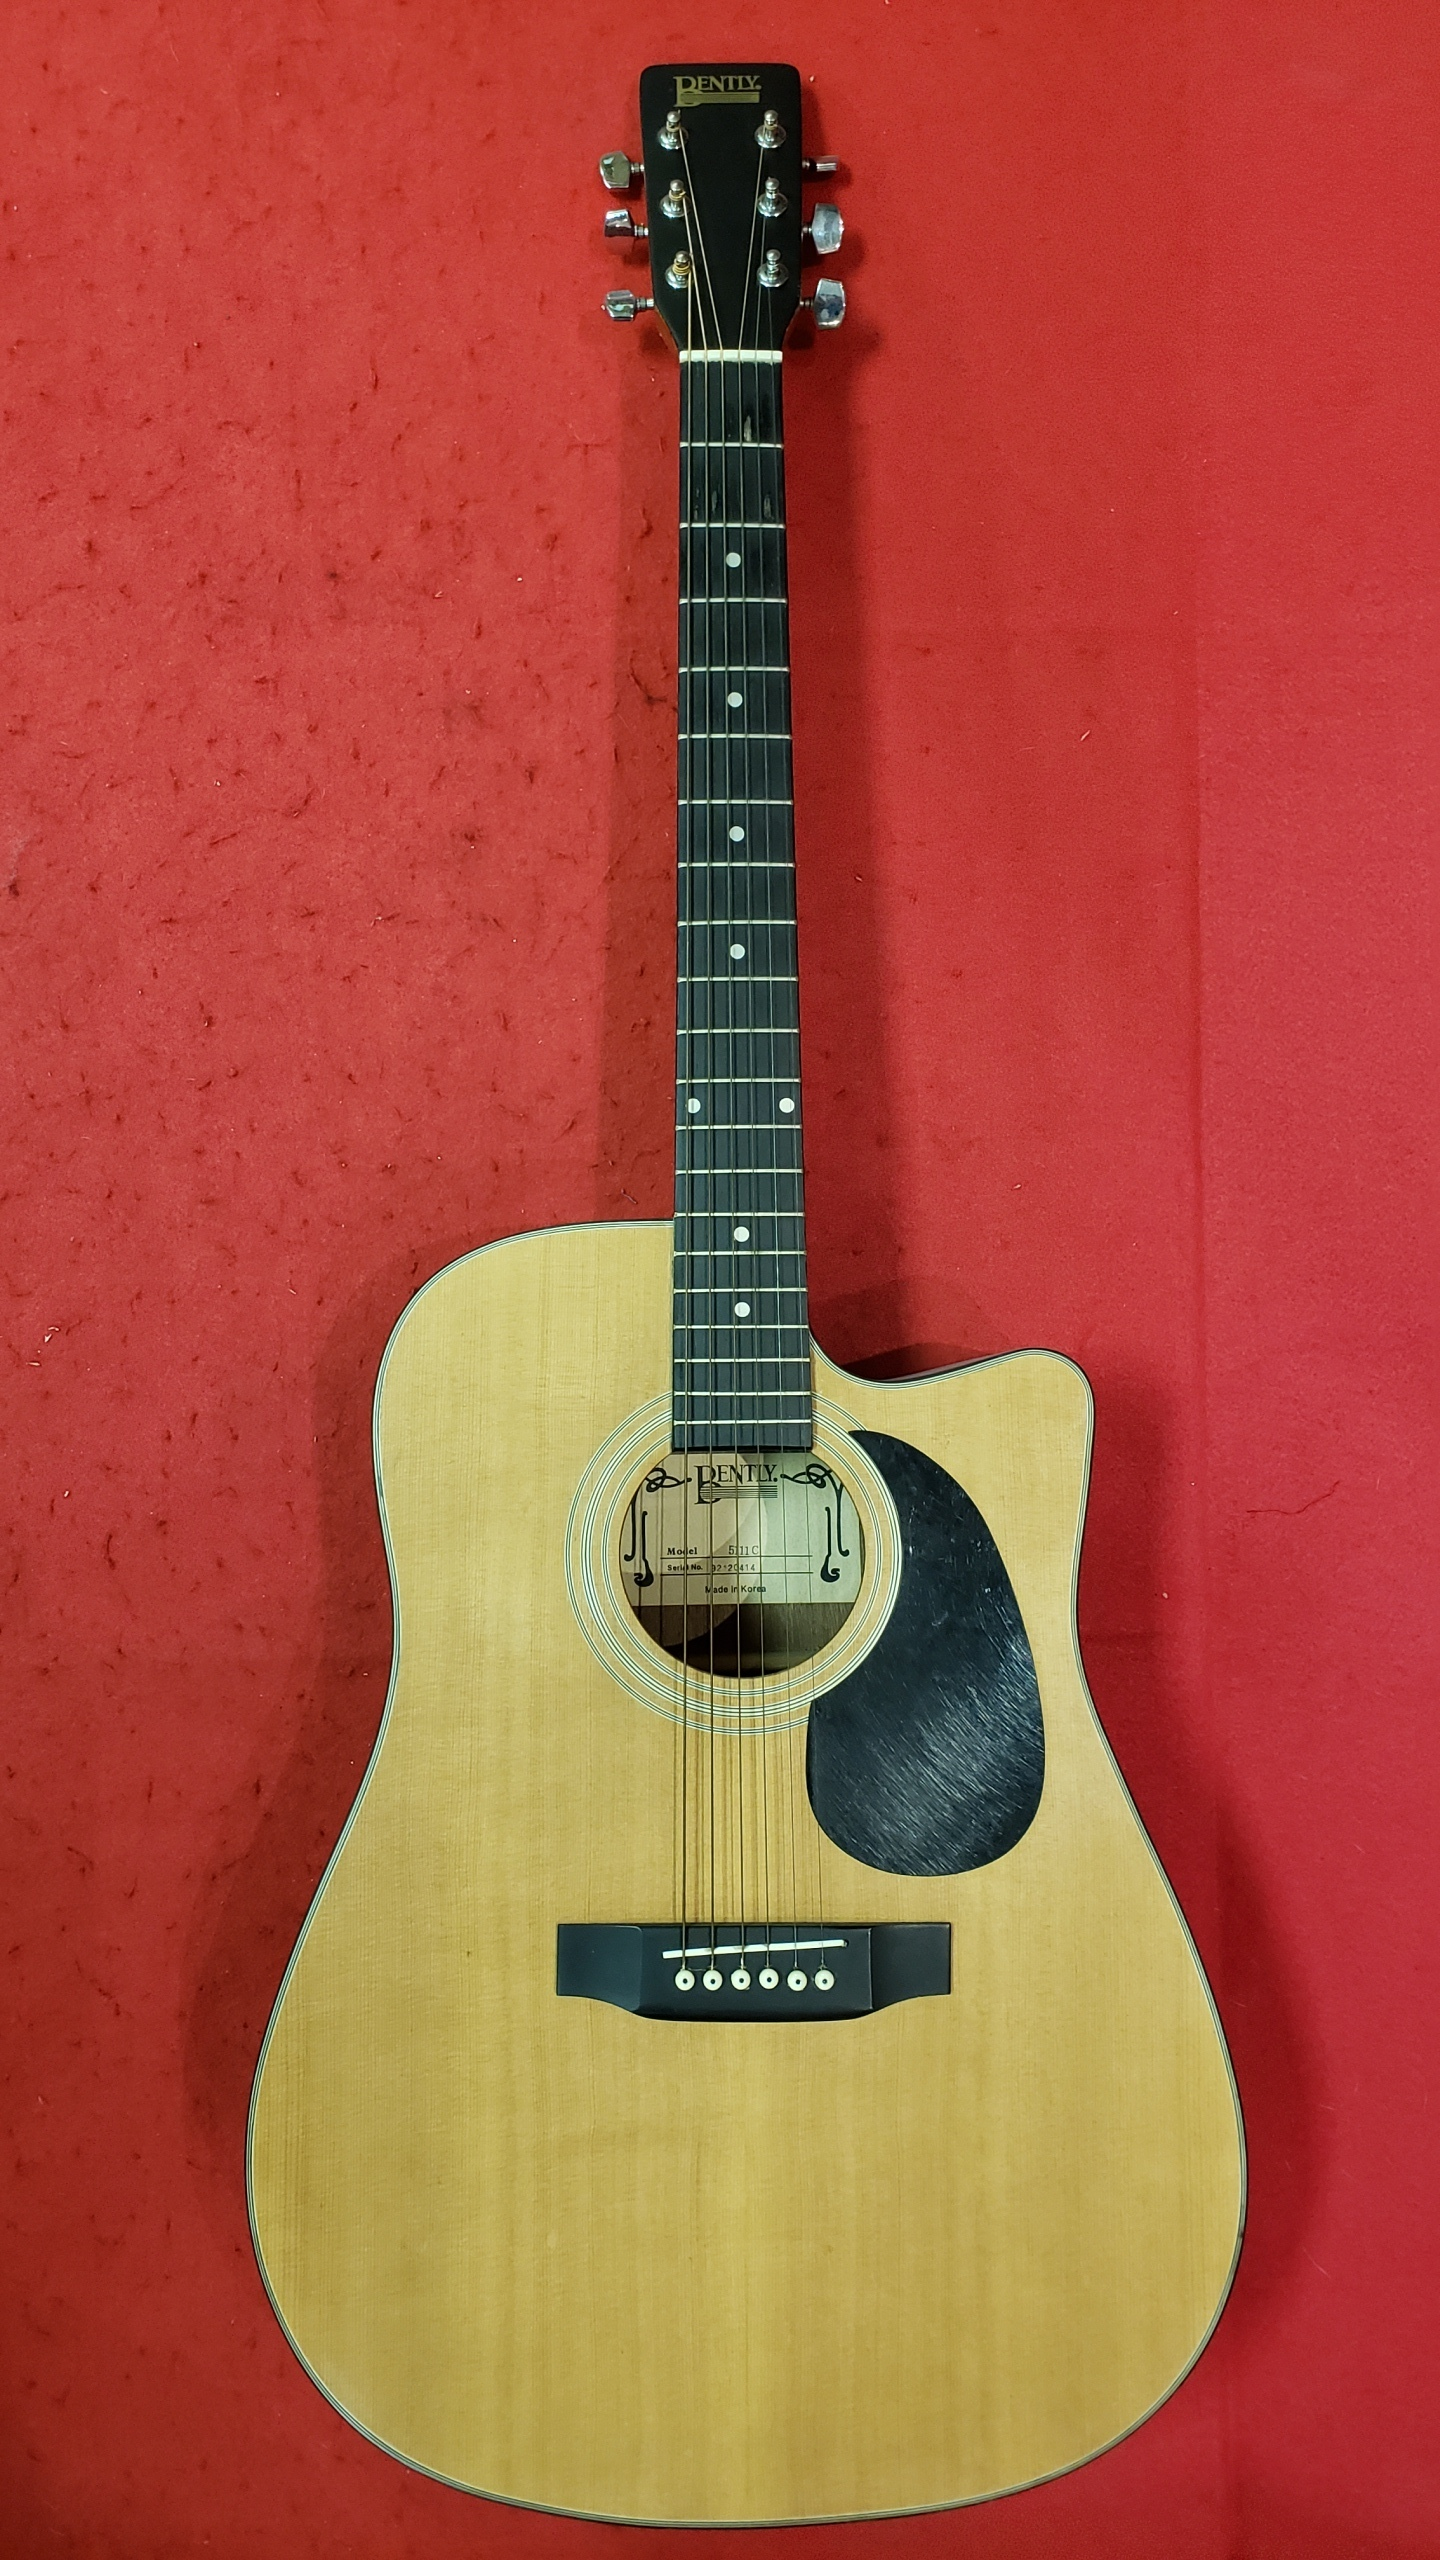 MUSICAL INSTRUMENT - GUITAR - ACOUSTIC - BENTLY - 5111C